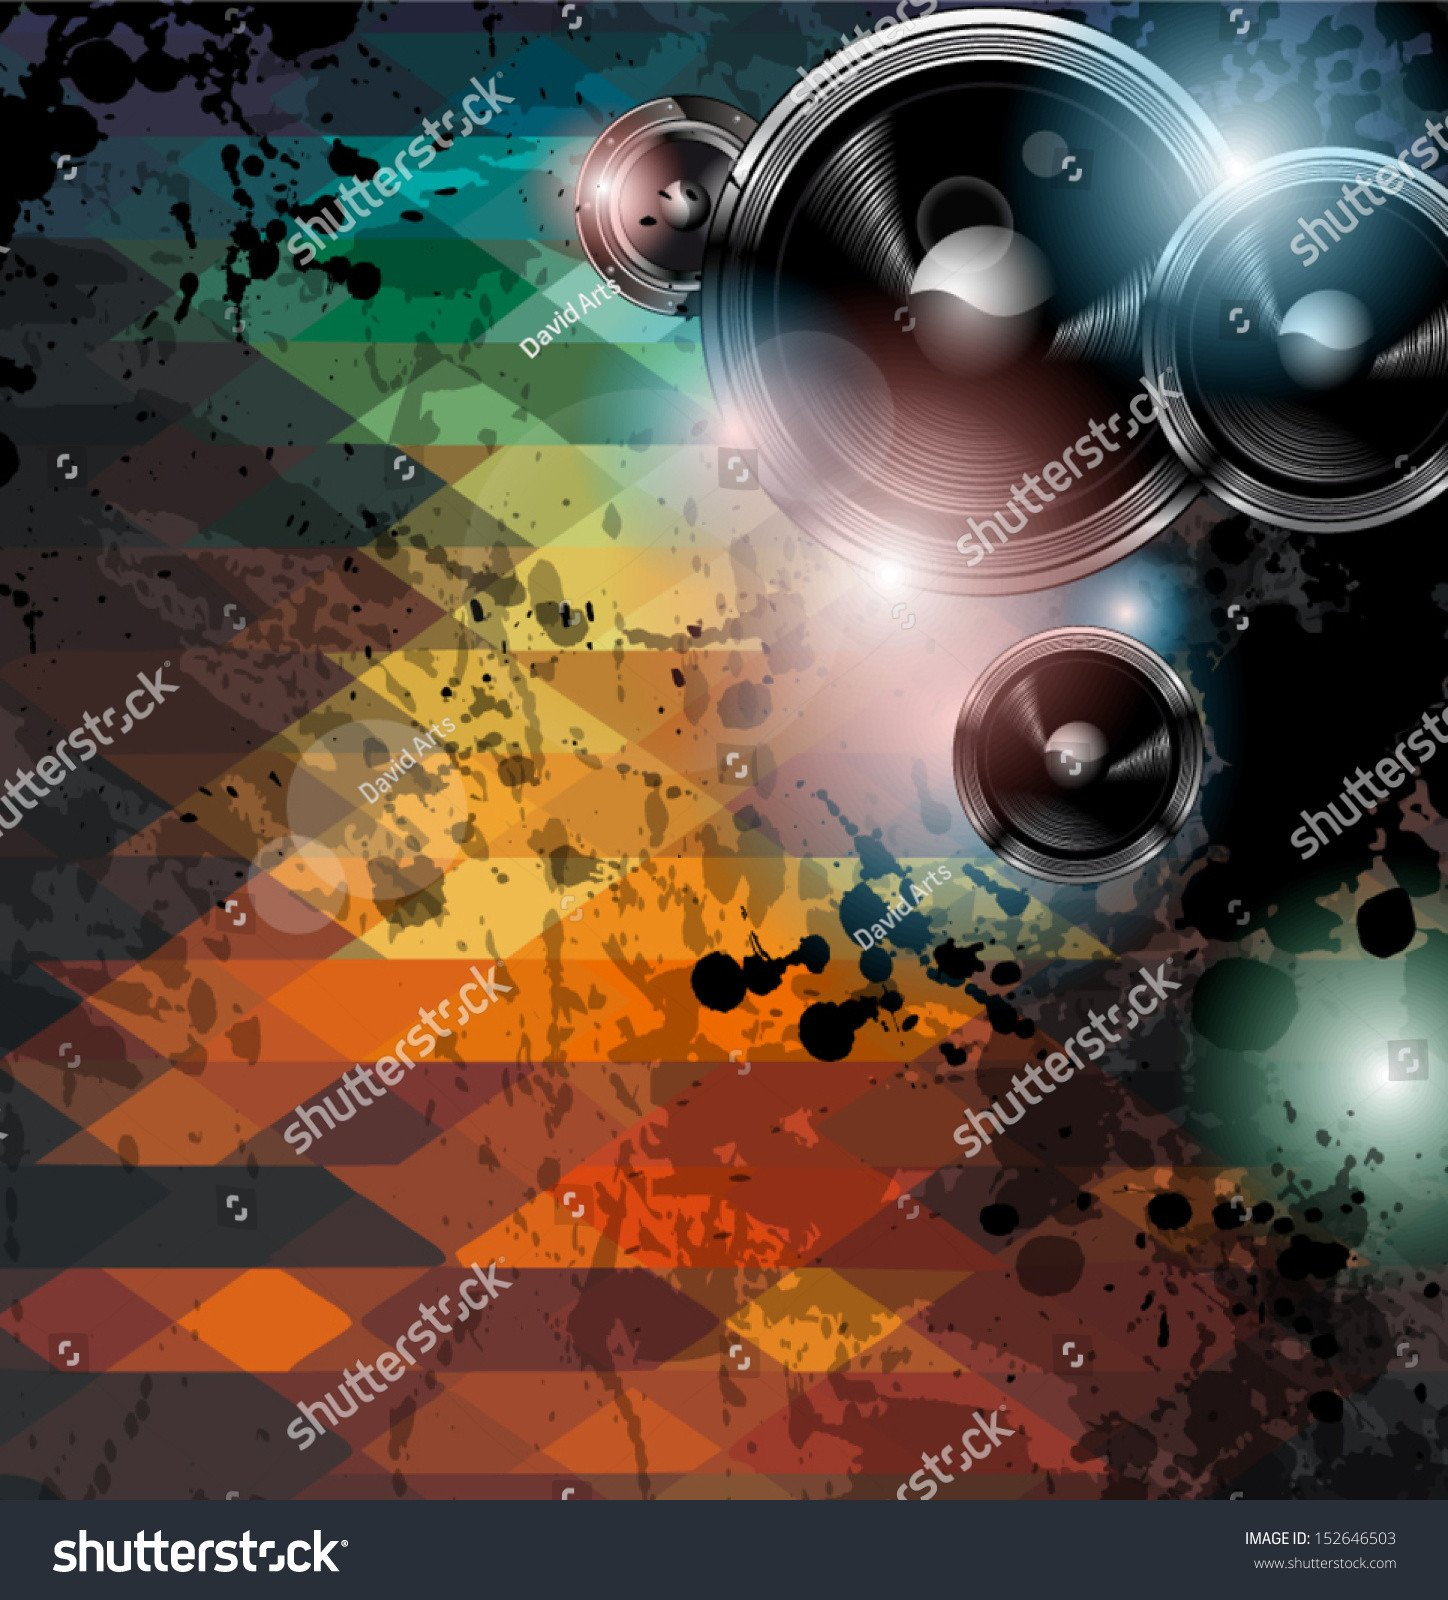 Club Flyer Background Templates Disco Club Flyer Template Abstract Background Stock Vector